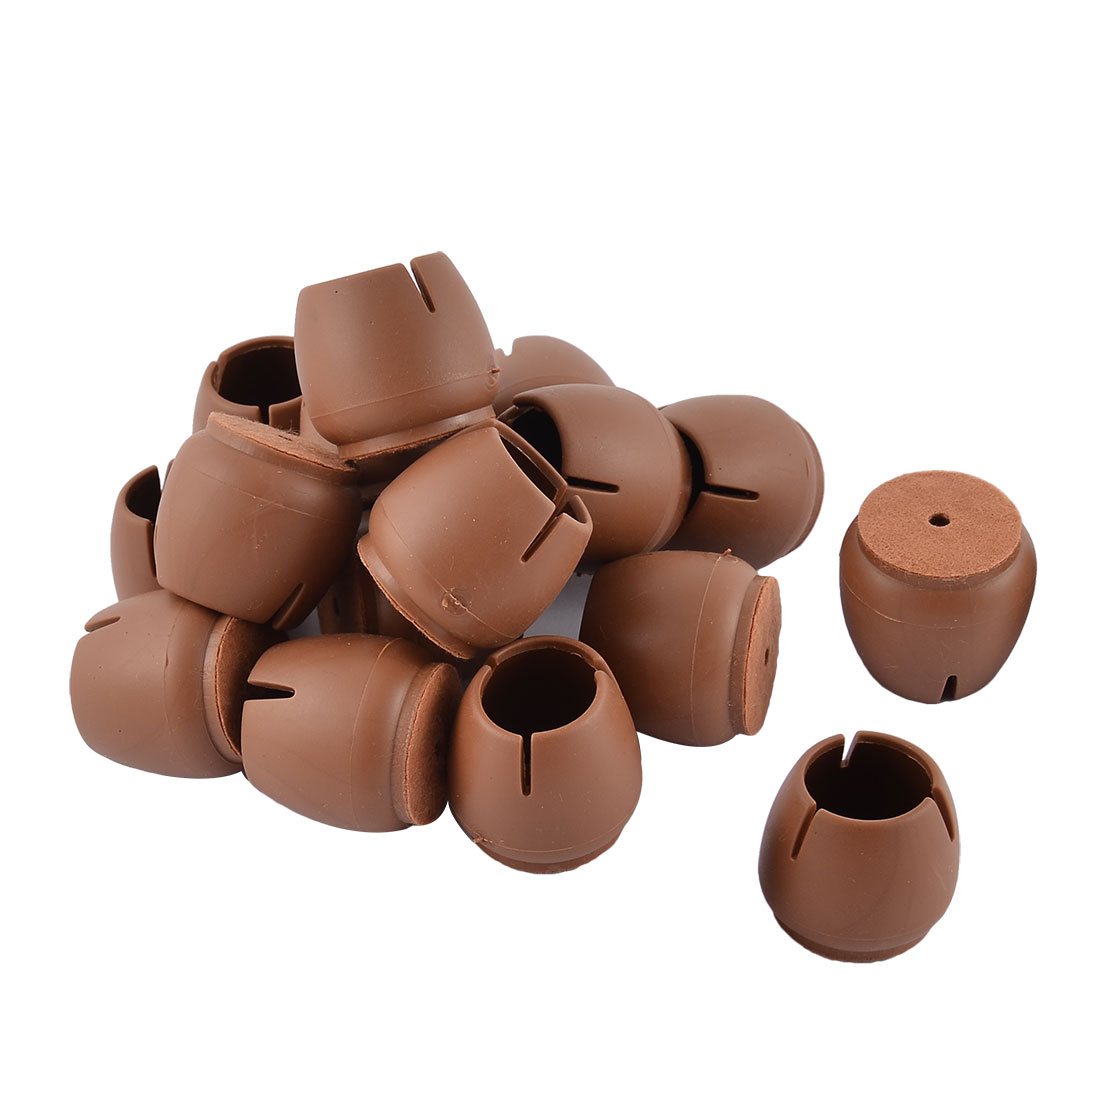 Silicone Round Bottom Floor Protector Furniture Foot Leg Tip Cap Cover Coffee Color 3.4 x 3cm 16pcs